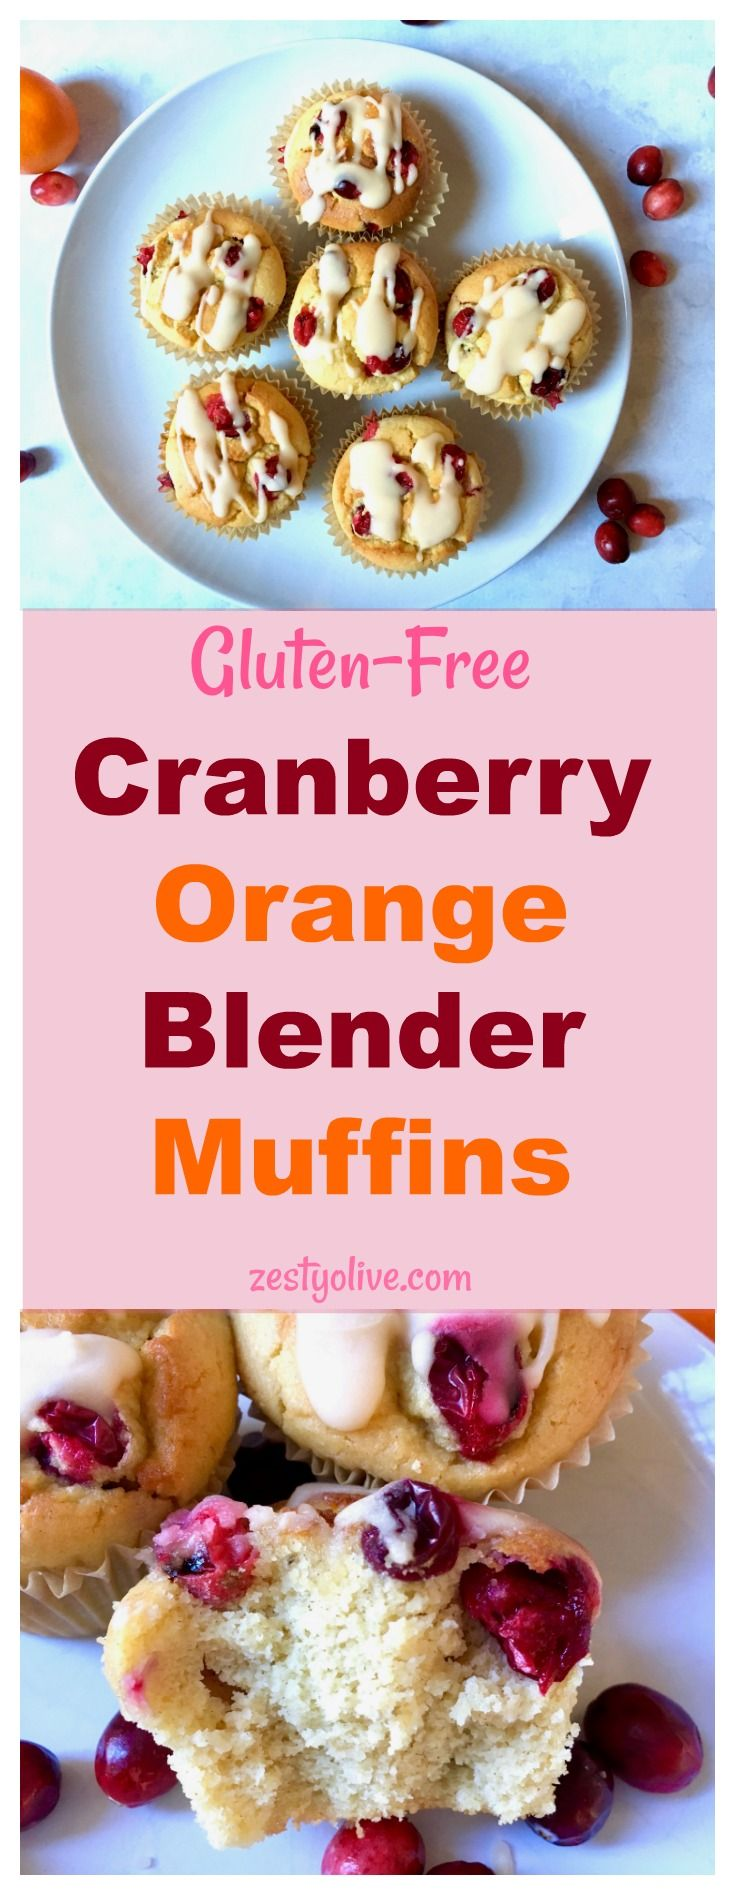 Gluten-Free Cranberry Orange Blender Muffins are an easy and healthy breakfast option or a delicious afternoon snack.